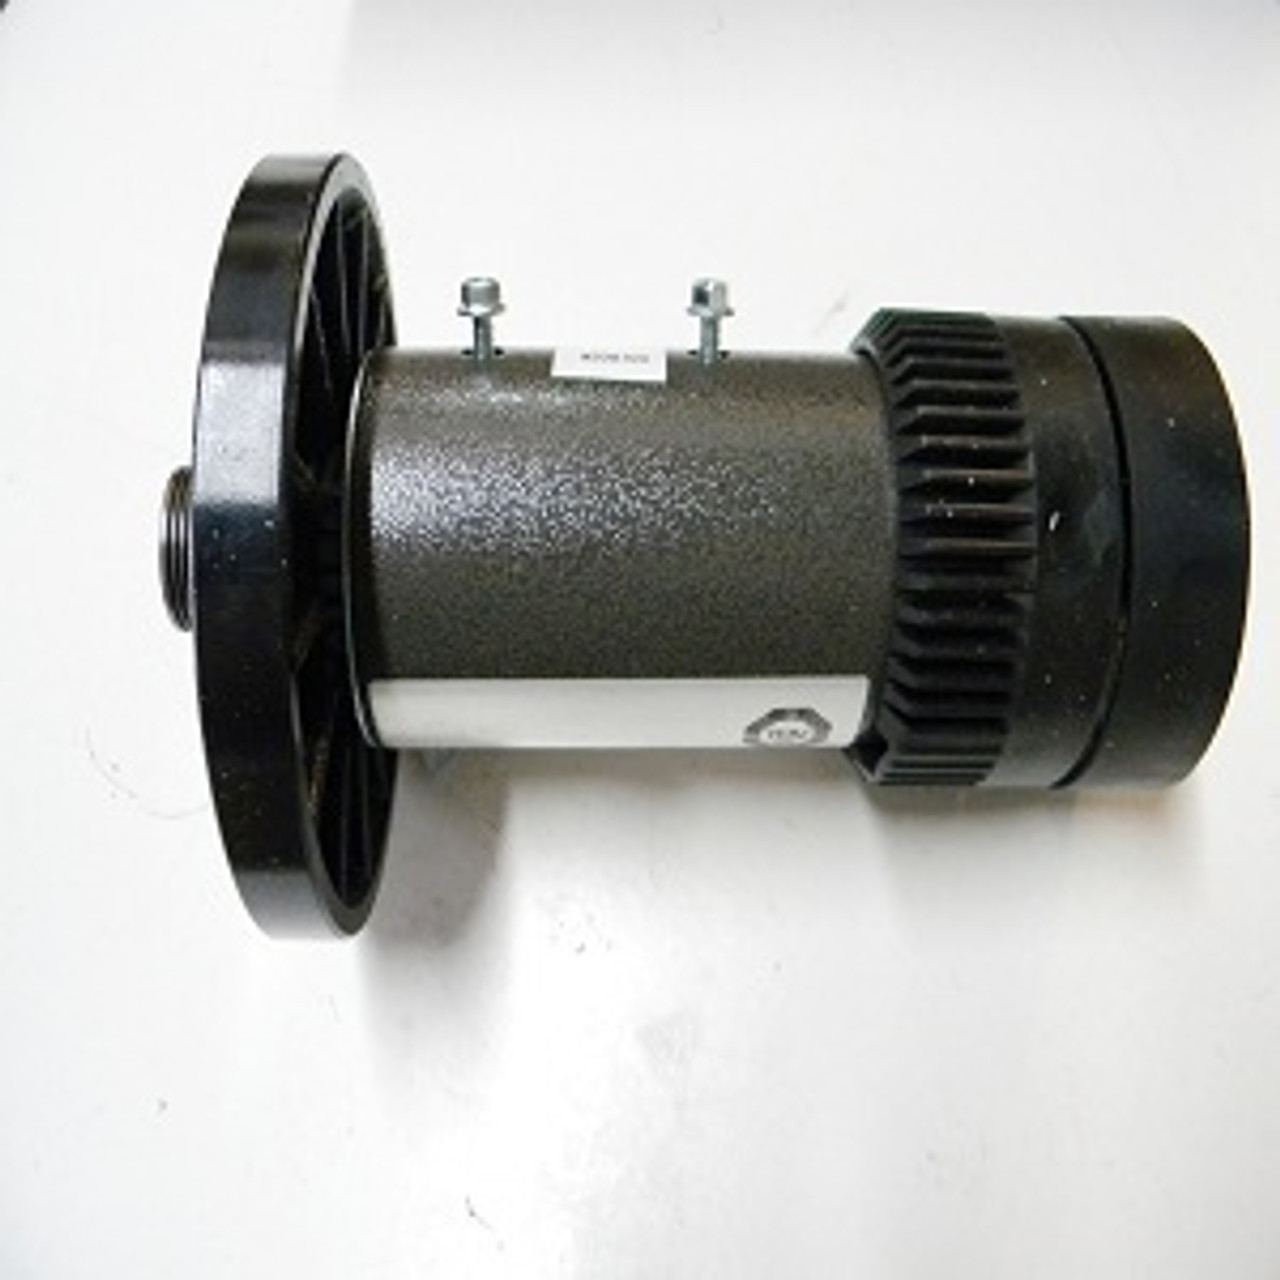 Treadmill Drive Motor Part Number 405618